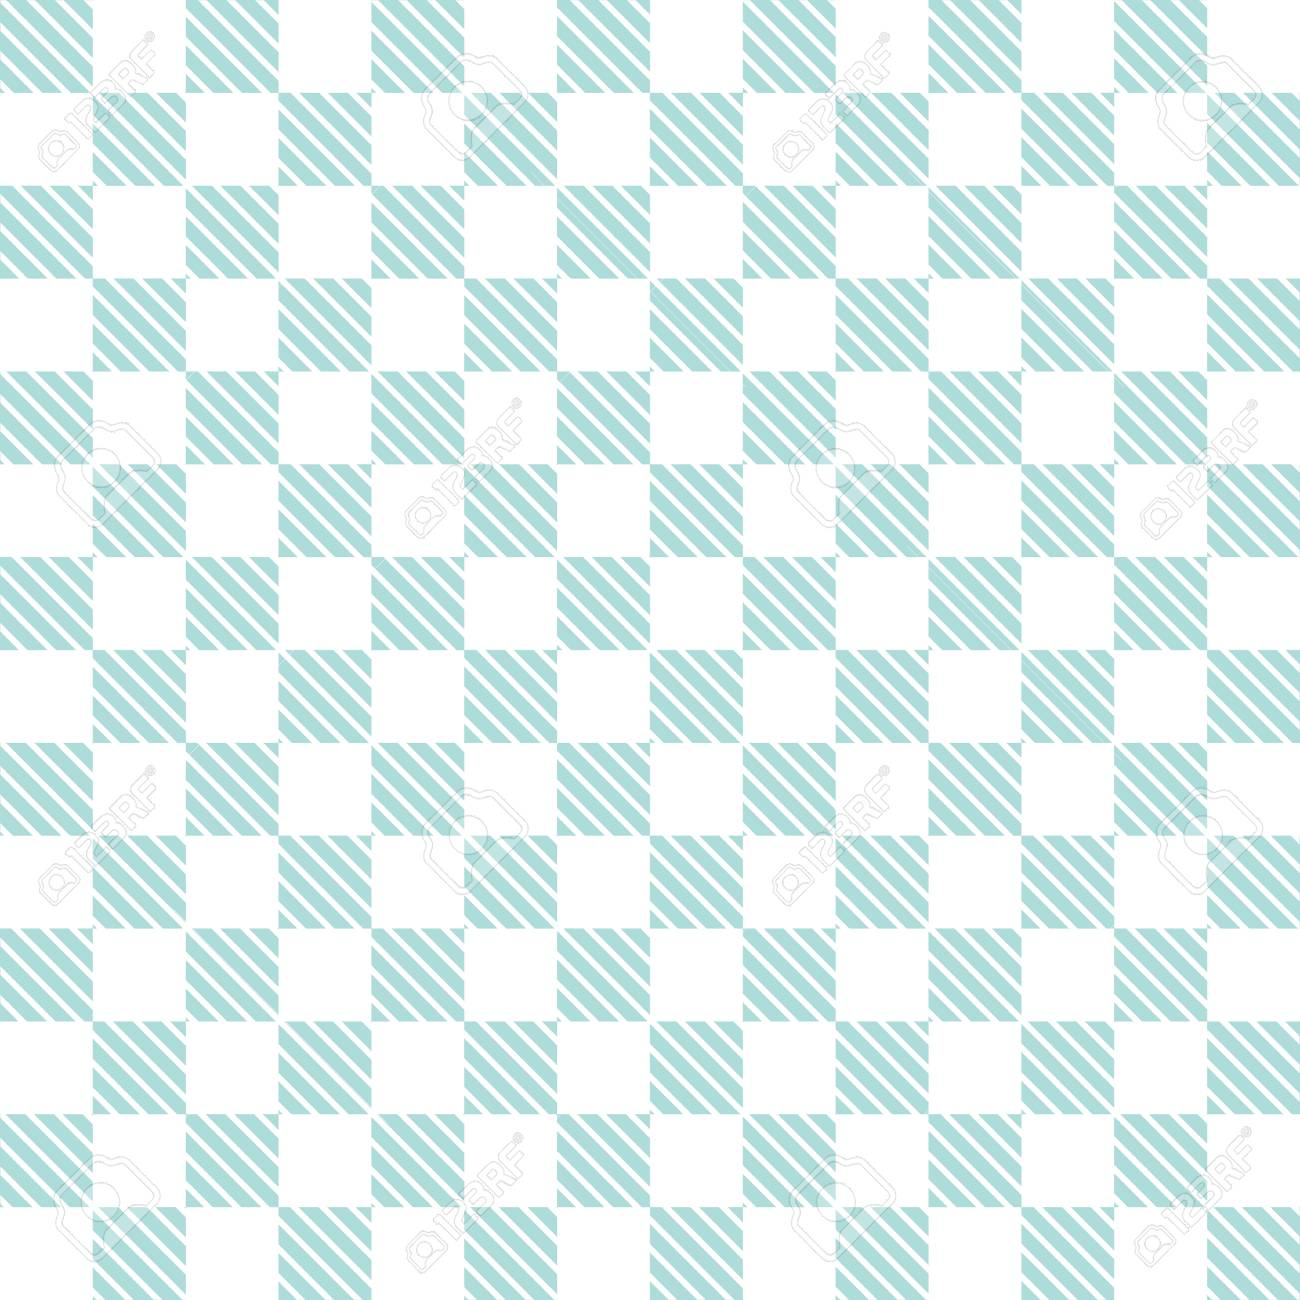 Background Seamless Pattern Gingham Tablecloth Stock Vector   69746430